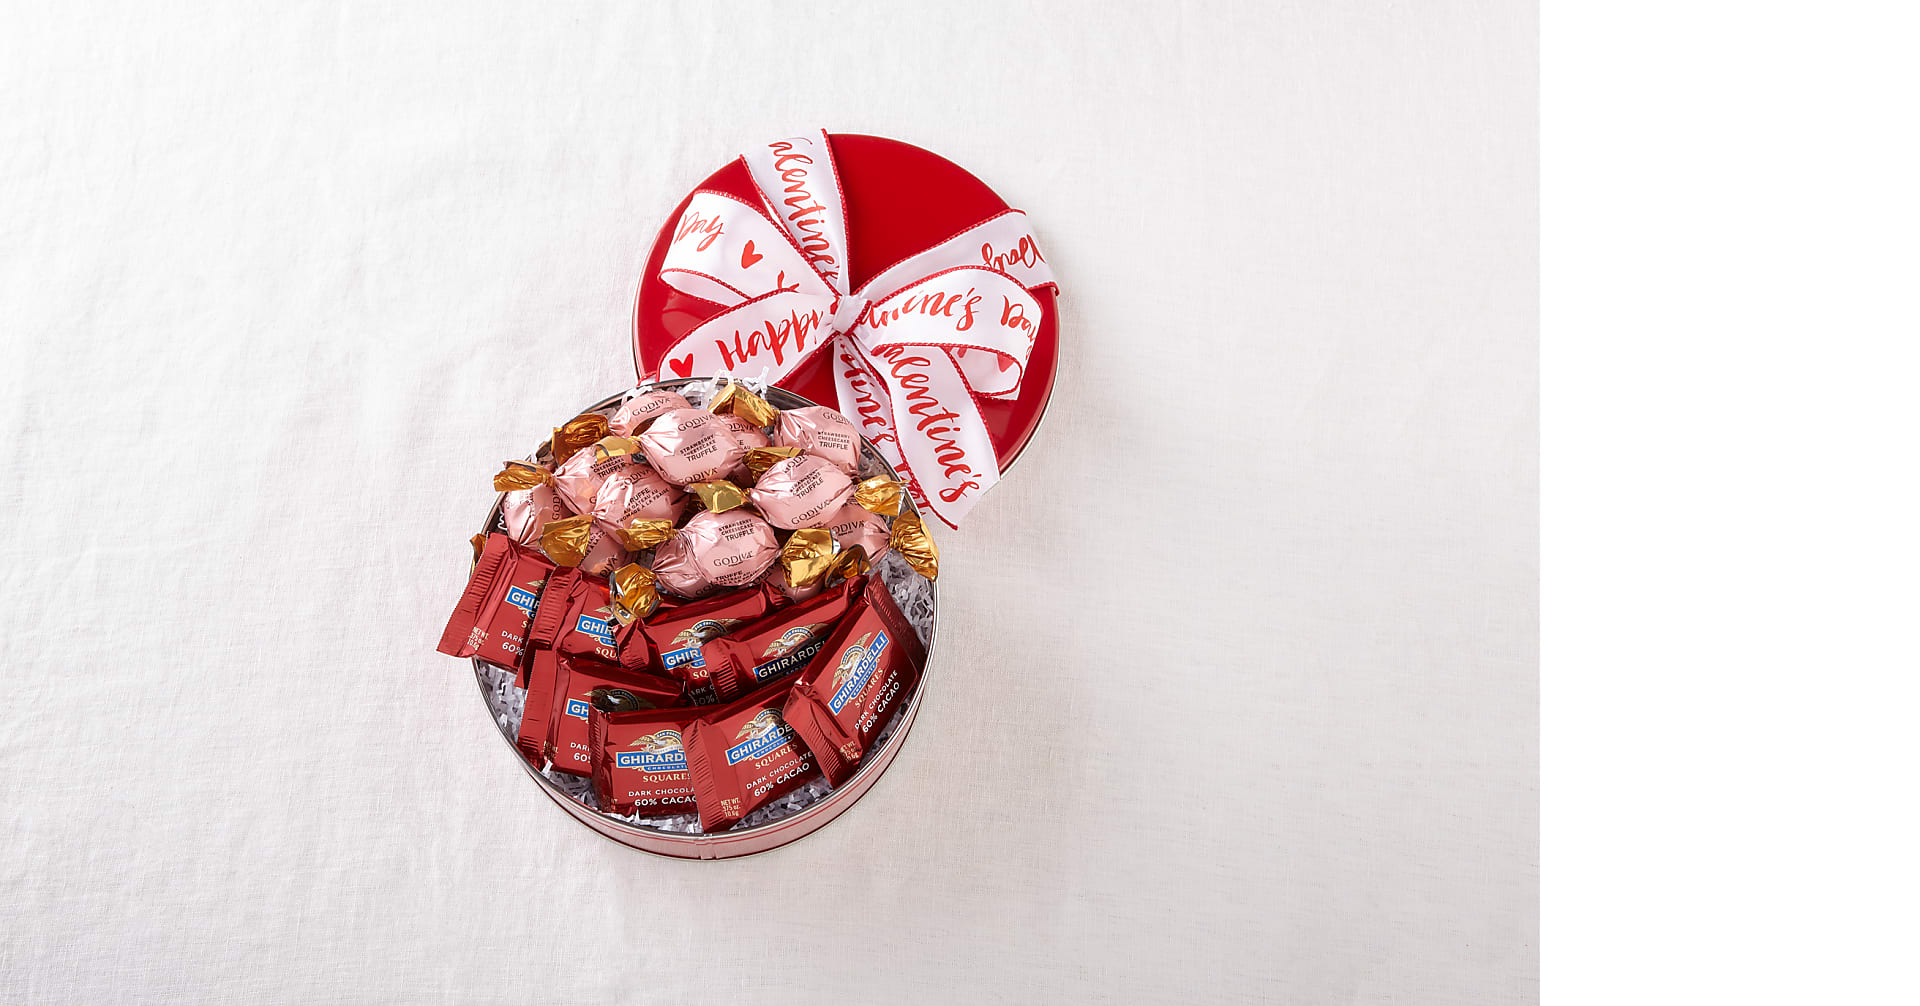 Chocolate Lover's Valentine's Assortment Gift Tin - Image 1 Of 2